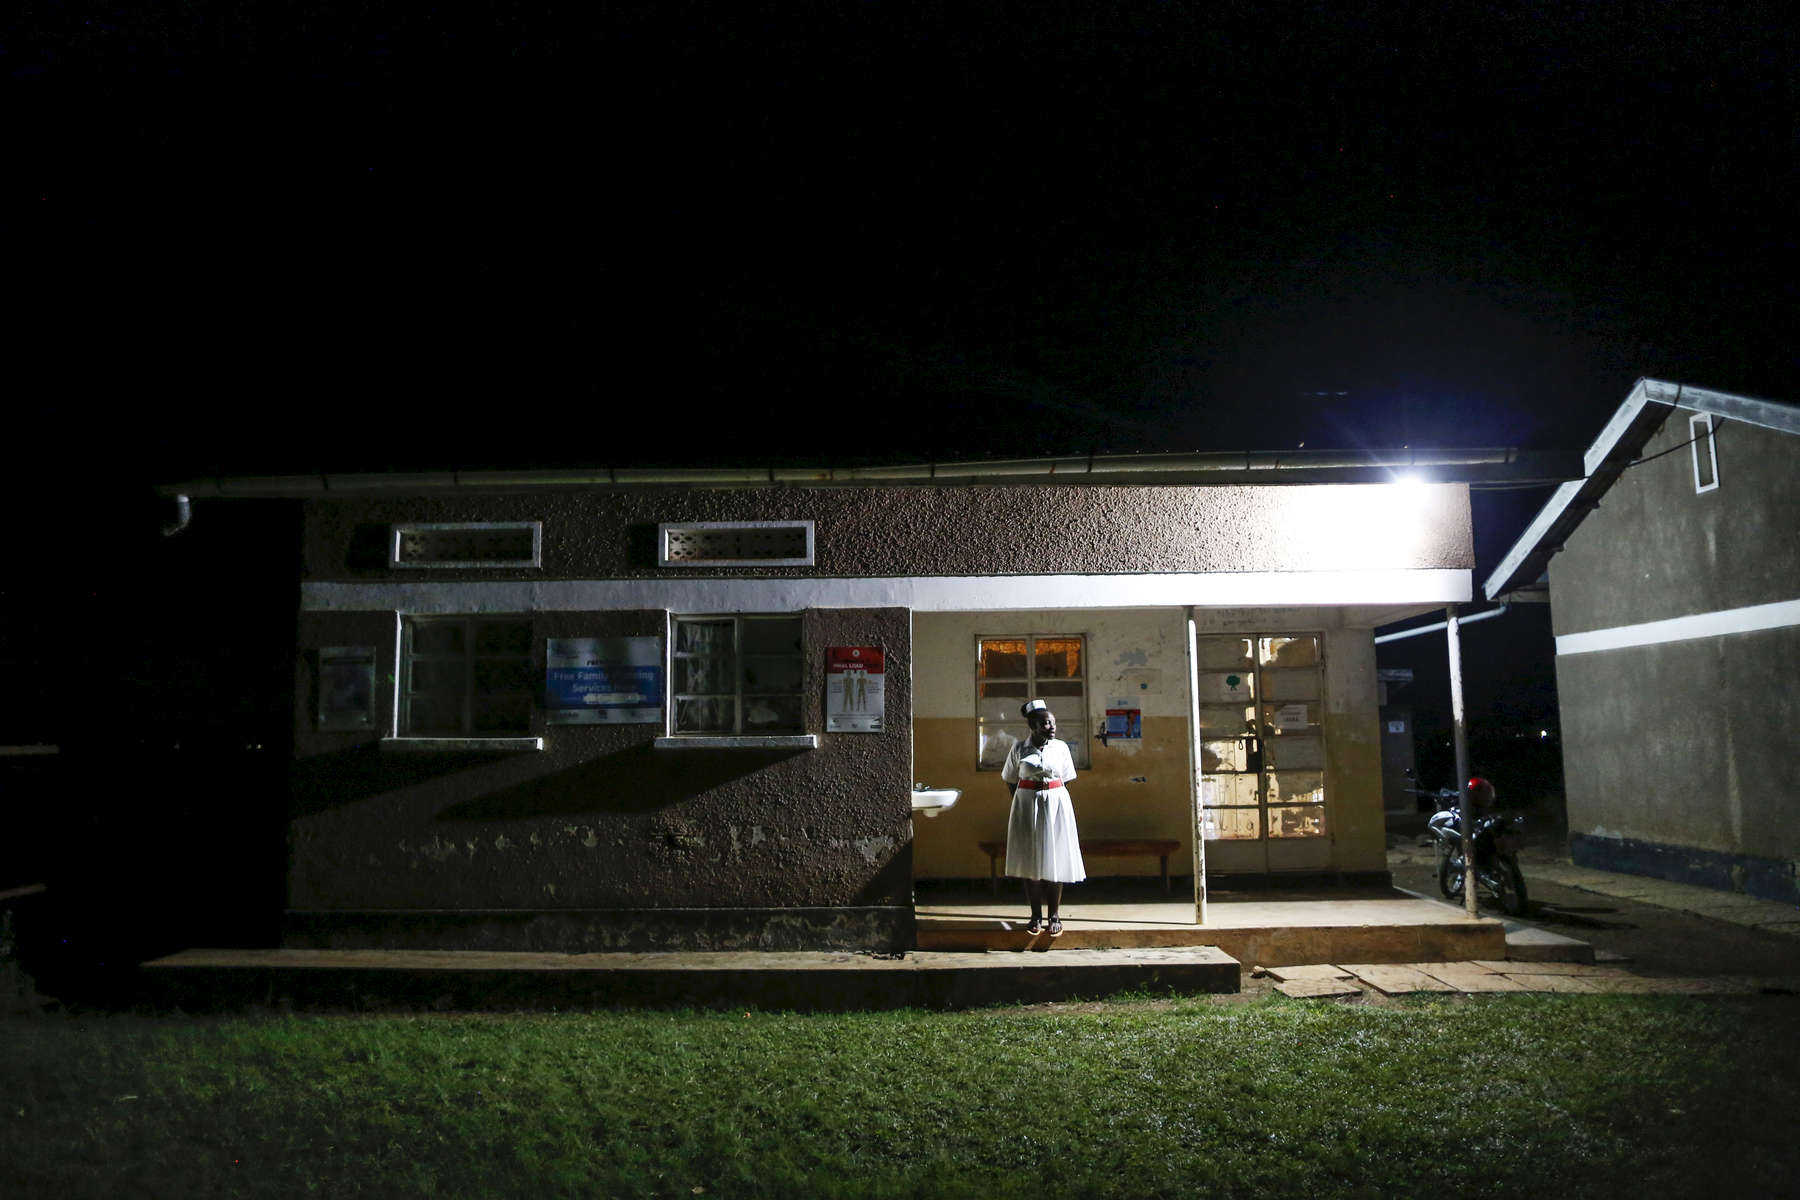 Jacqueline Cosslin, a midwife, stands outside of a maternity clinic lit by a solar panel in the district of Rakai, Uganda on December 6, 2018. In Africa, the development of solar panels technology has greatly improved the quality of life of people who previously had to use more expensive dangerous and less efficient options, like candles, petrol lamps, flashlights, or nothing at all.